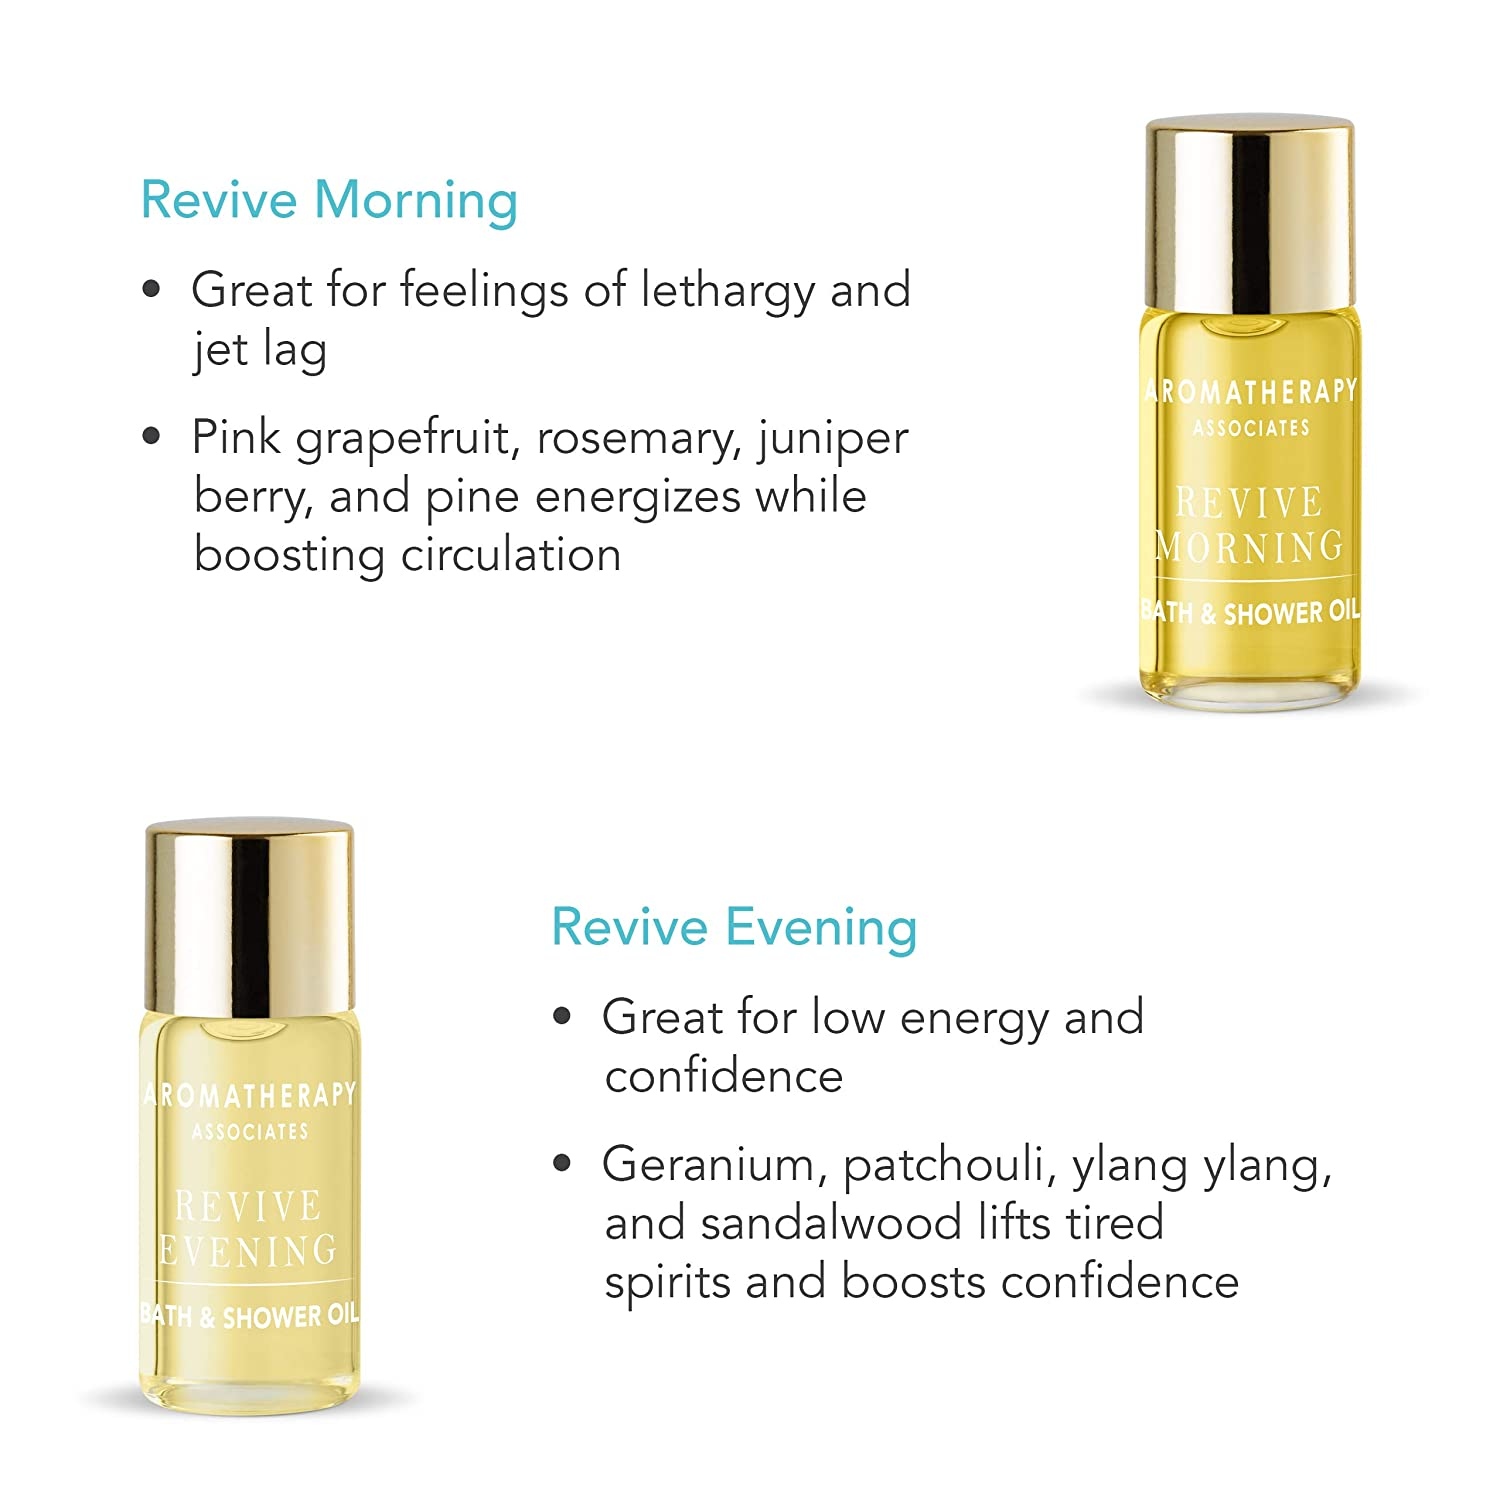 Aromatherapy Associates Discovery Wellbeing Miniature Bath & Shower Oil Gift Collection of 10, 3ml therapeutic, hand-selected bath and shower oils infused with essential oils. The ultimate gift.: Premium Beauty